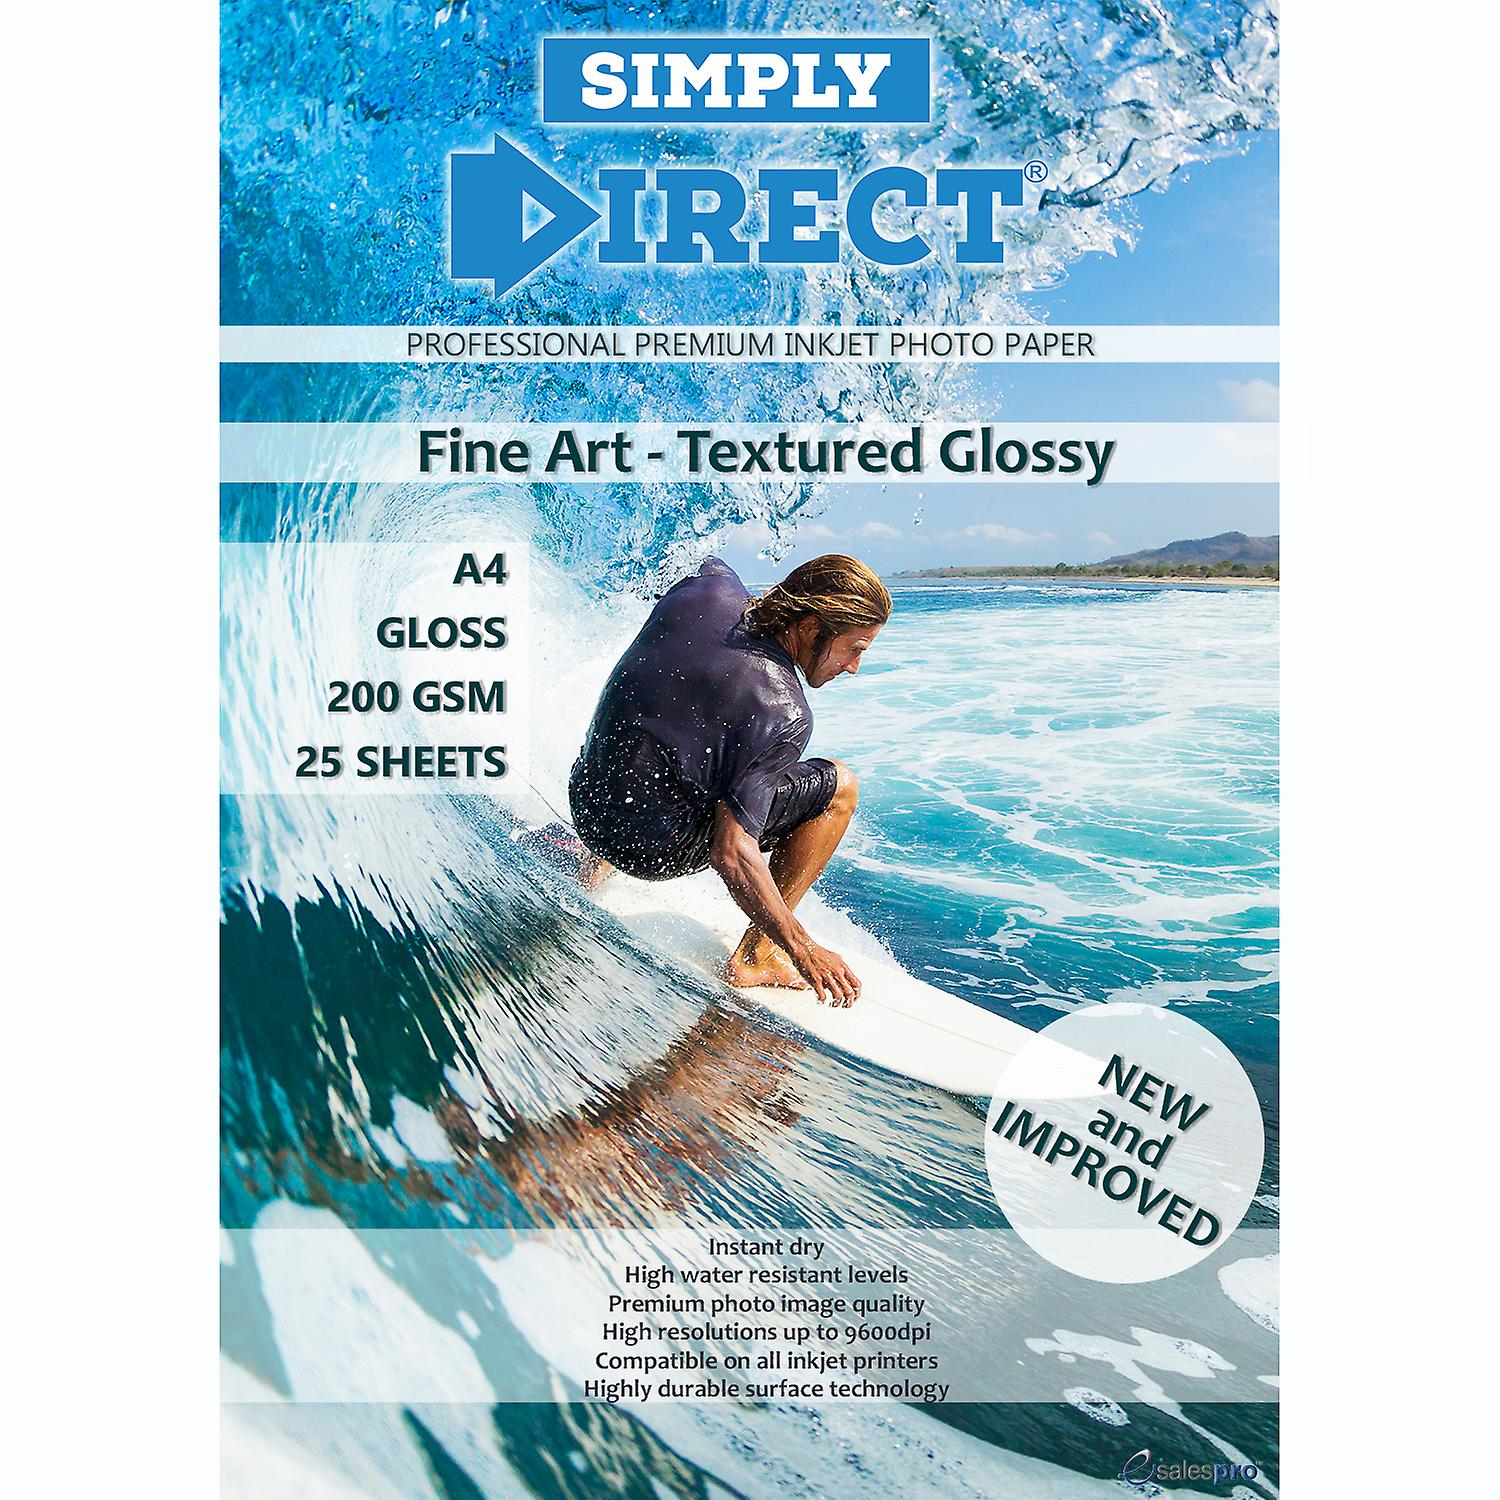 25 x Simply Direct A4 Textured Fine Art Gloss Photo Paper - 200gsm - Professional Premium Inkjet Paper